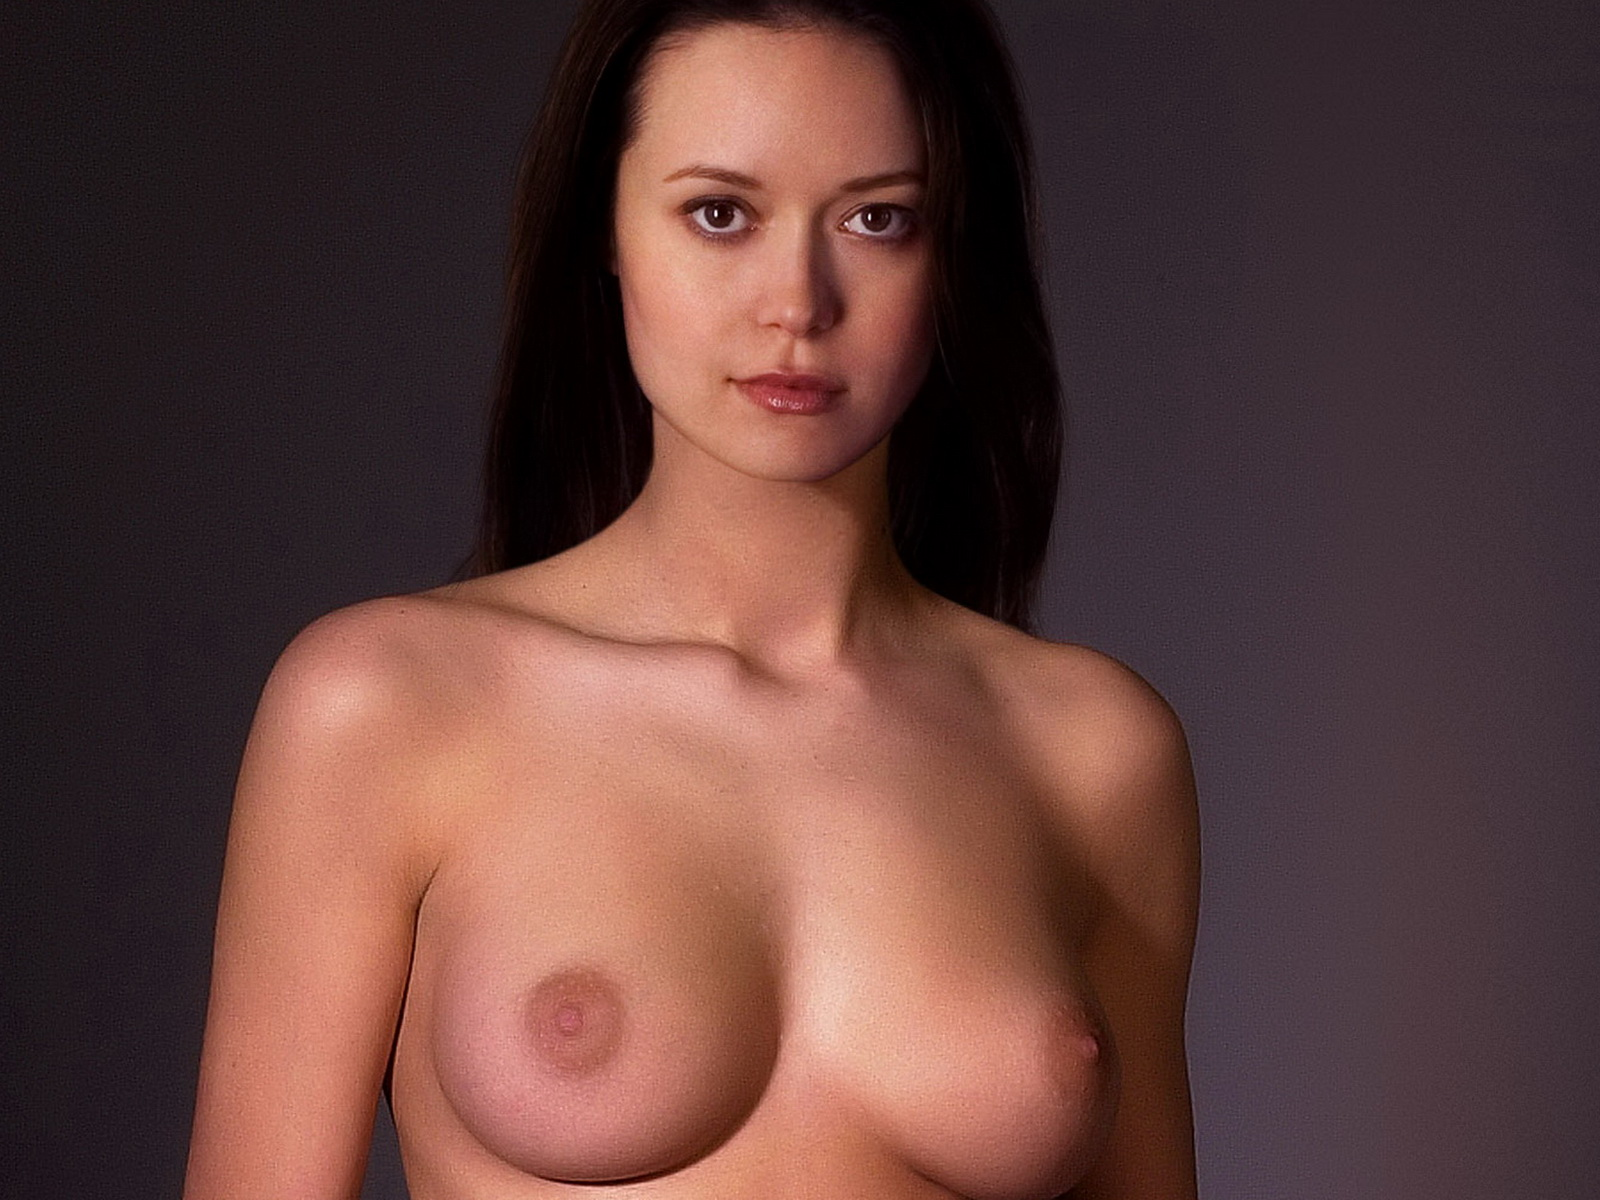 Summer Glau Nude Video